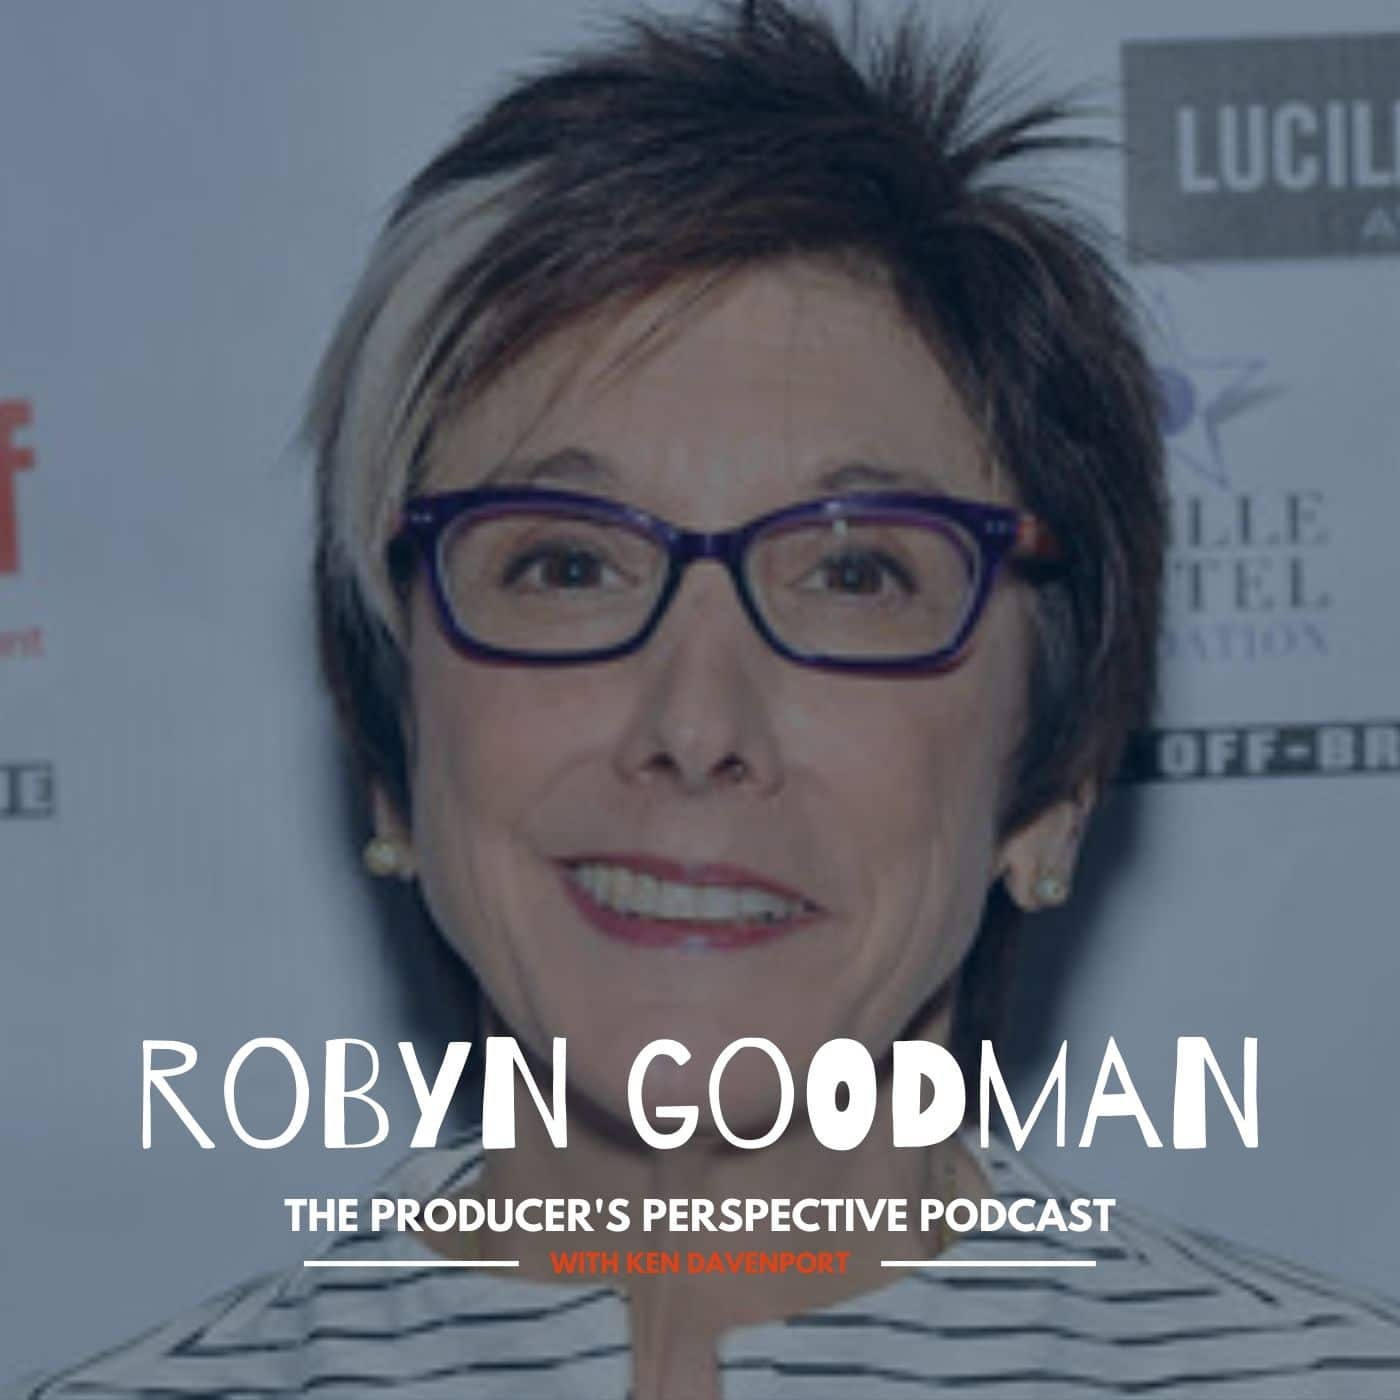 Ken Davenport's The Producer's Perspective Podcast Episode 64 - Robyn Goodman